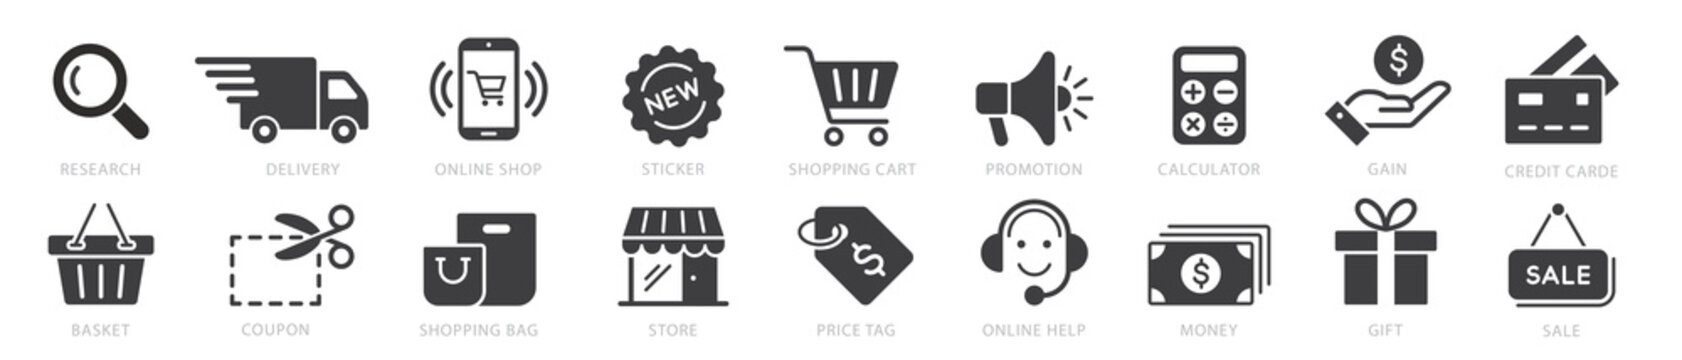 Online shopping icons set, payment elements vector illustration